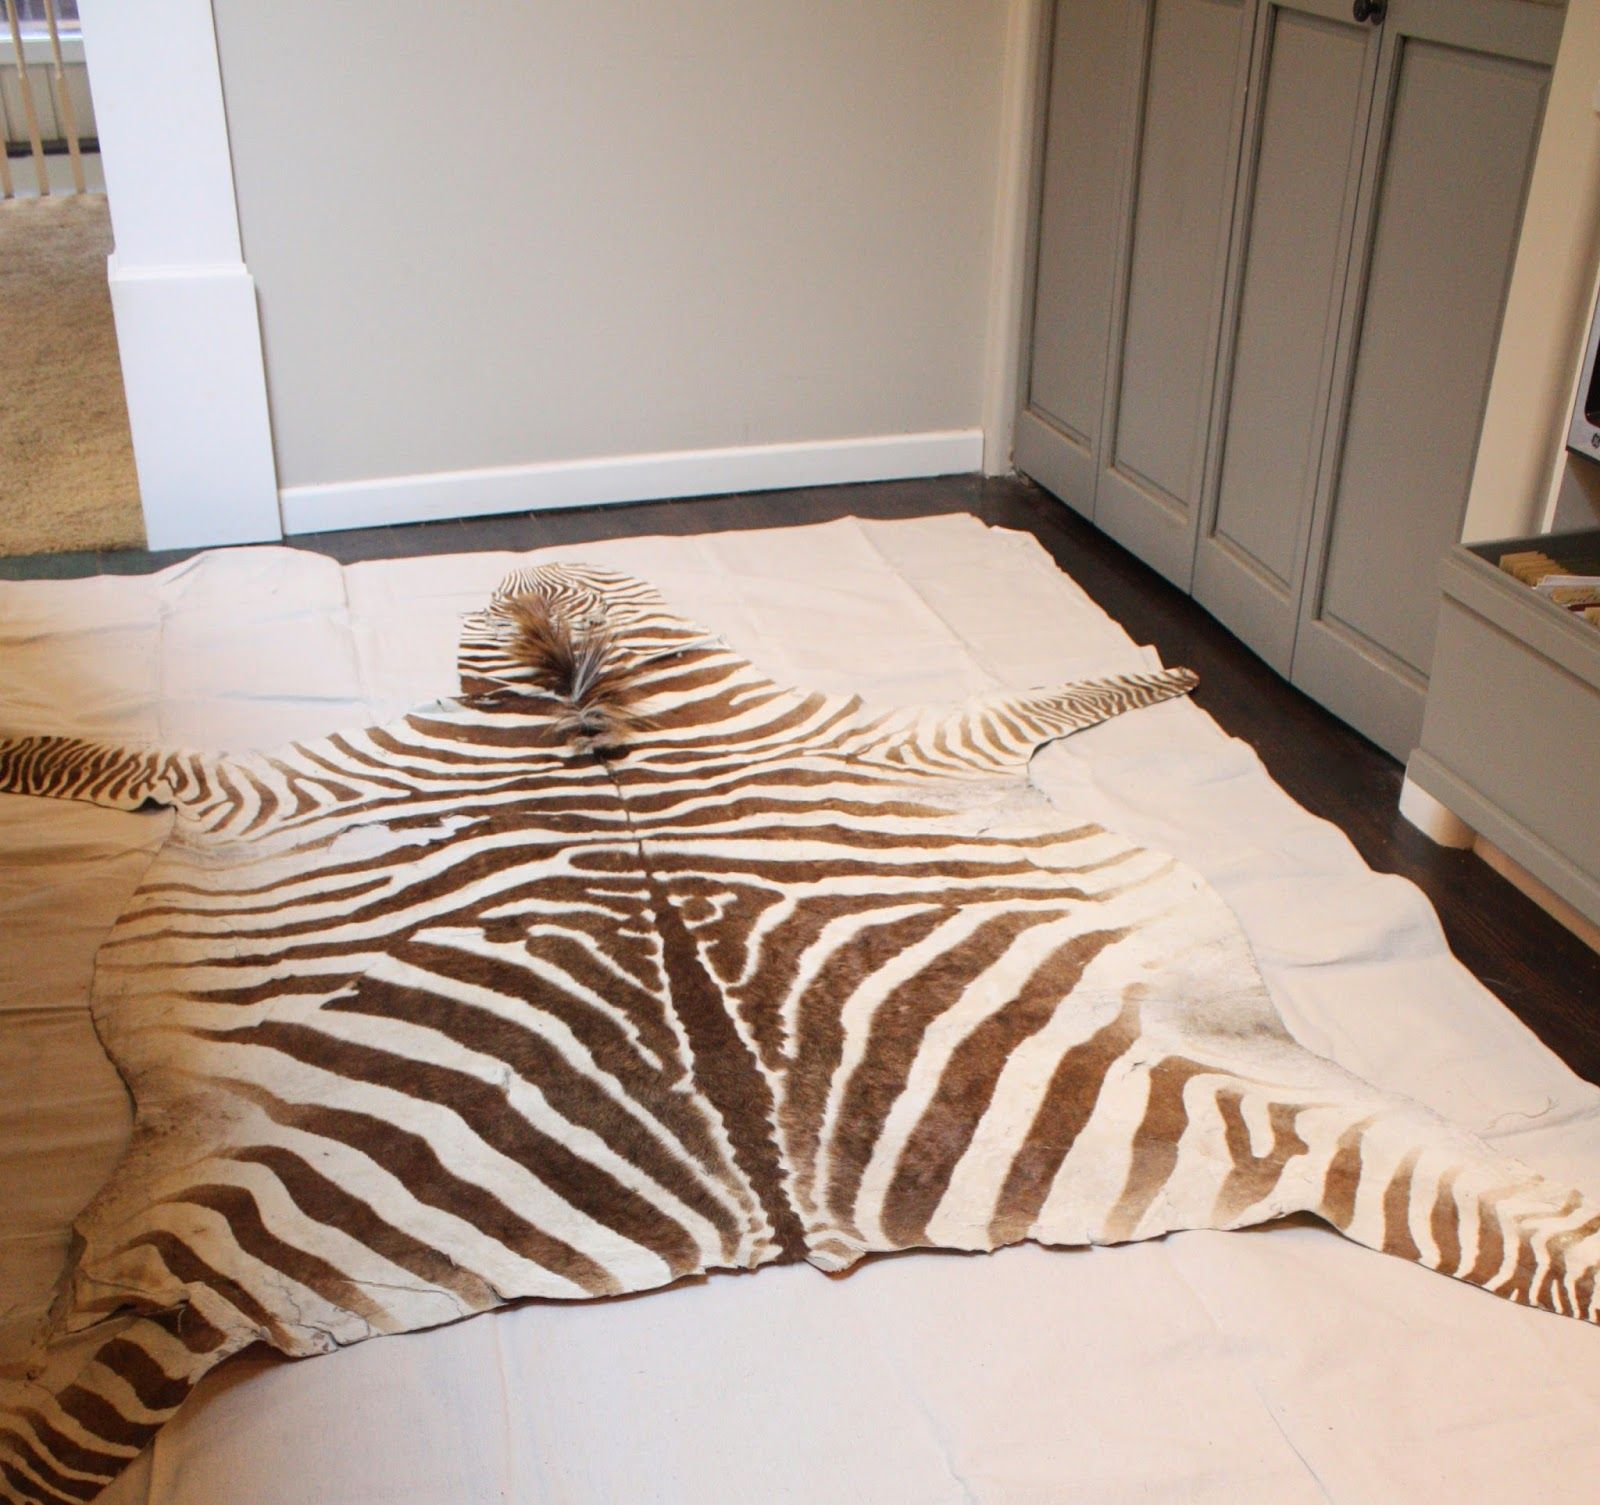 My Sweet Savannah: ~$15 DIY Faux Zebra Rug~{thrifty